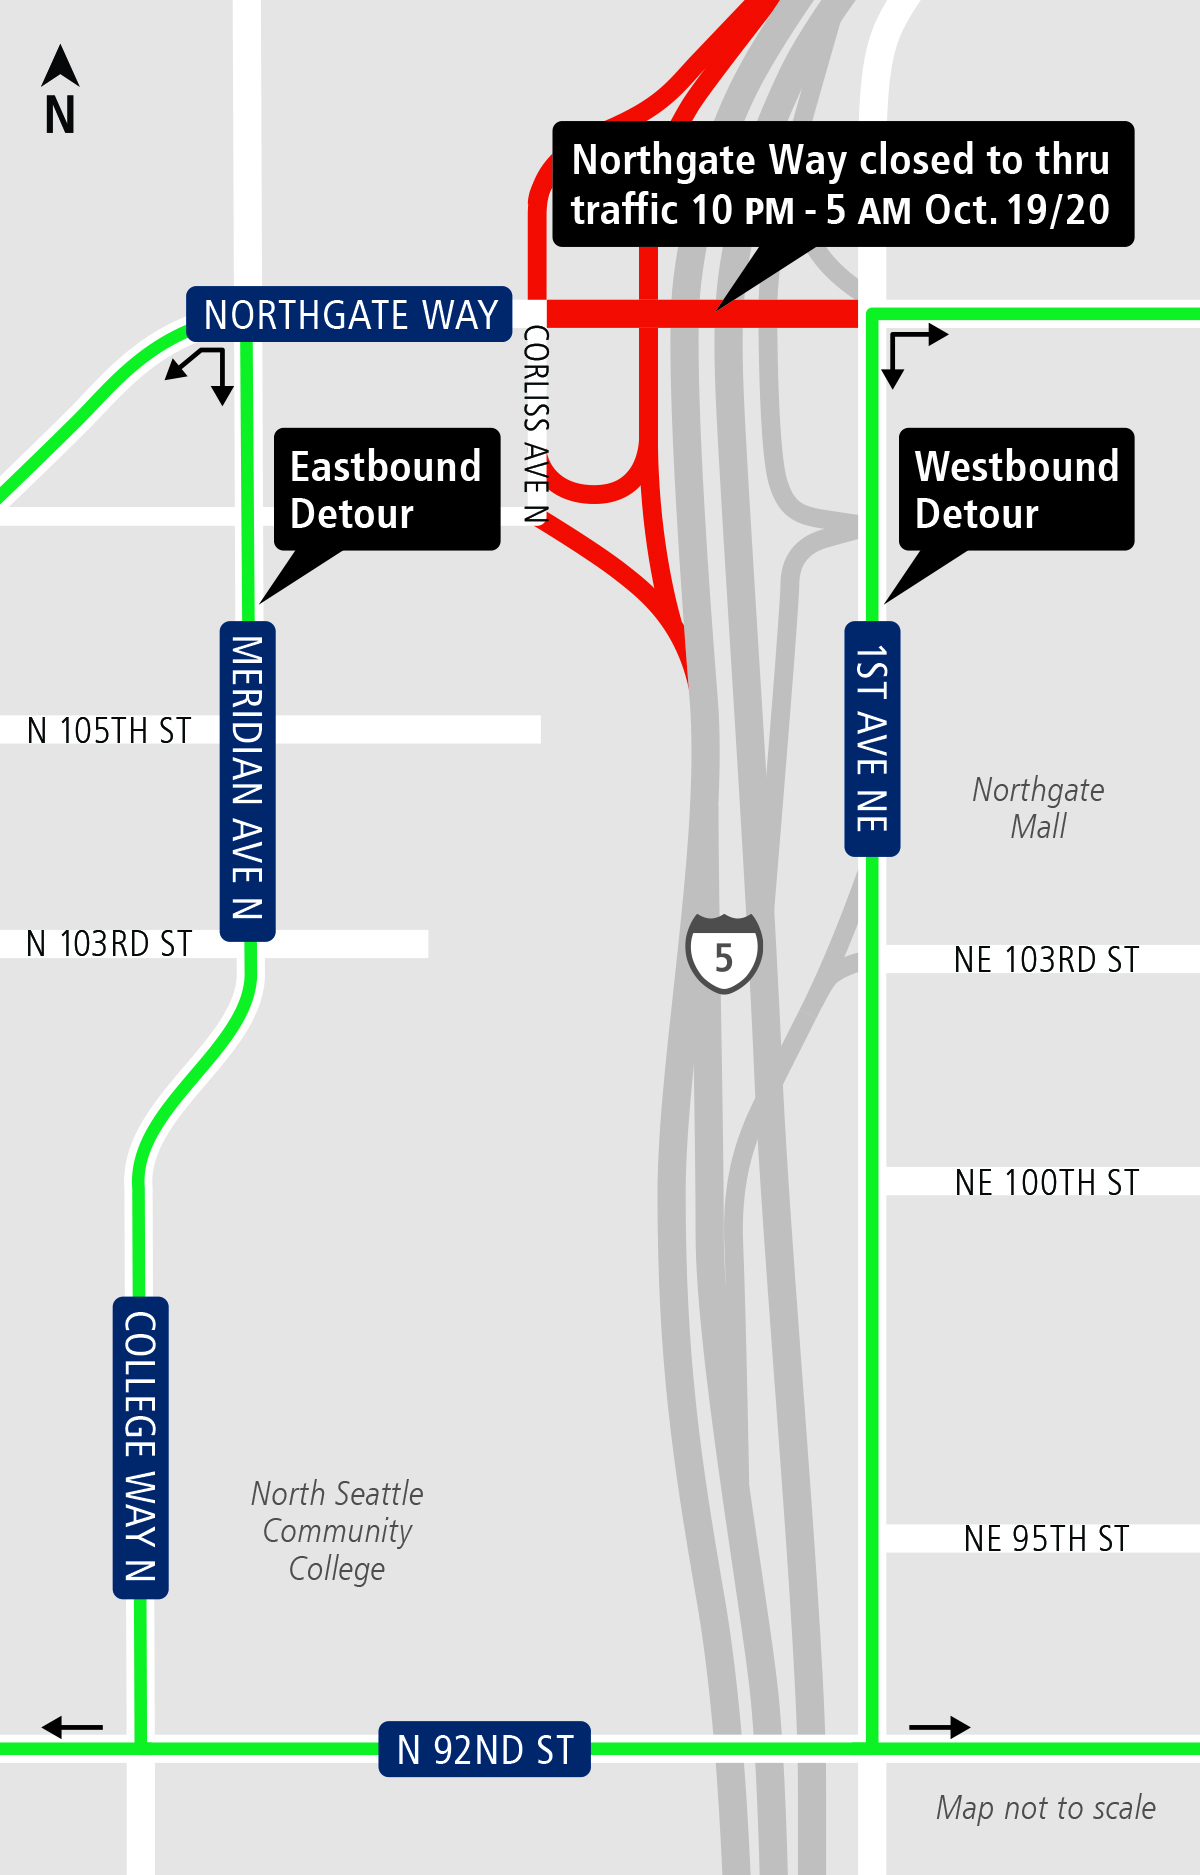 Map of construction on Northgate Way Oct. 19-20